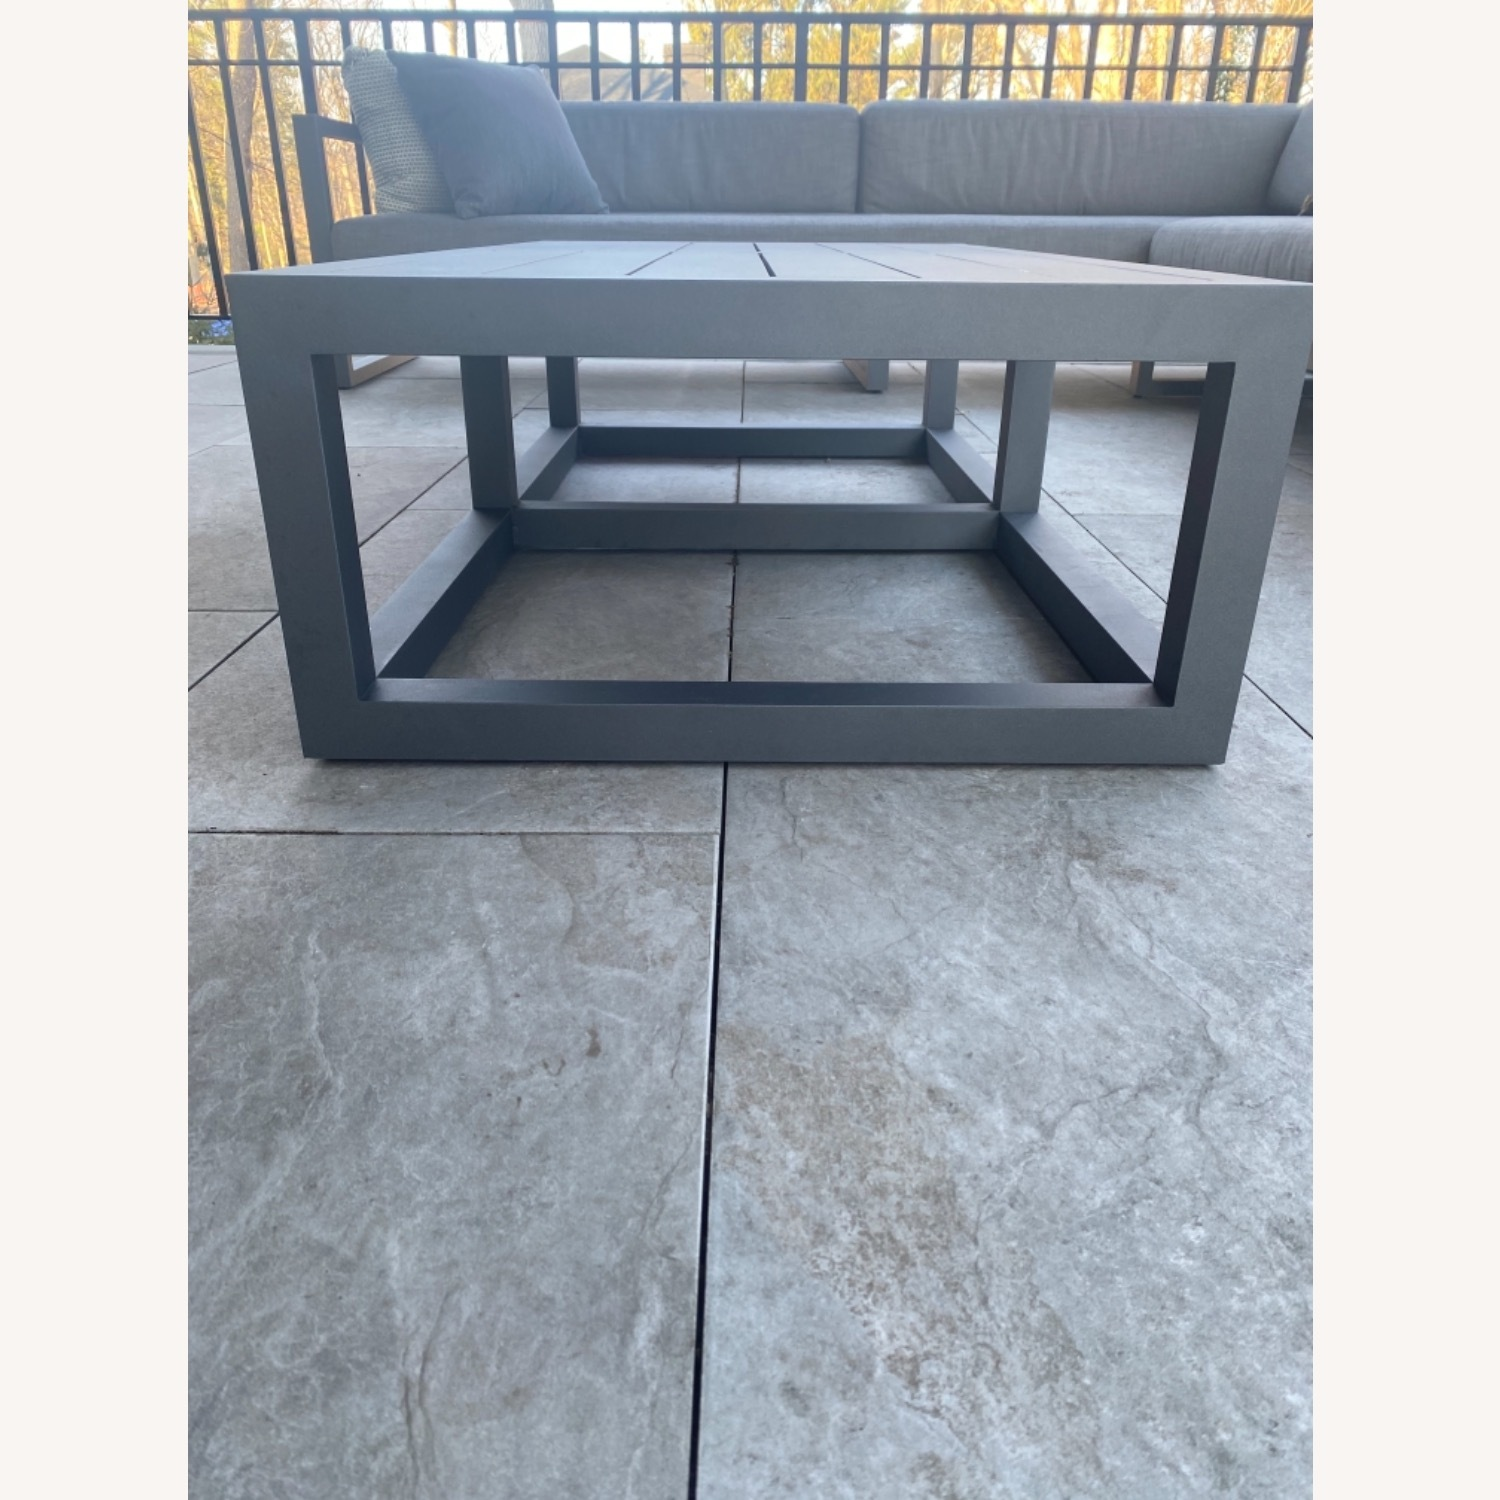 Restoration Hardware Outdoor Coffee Table - image-4